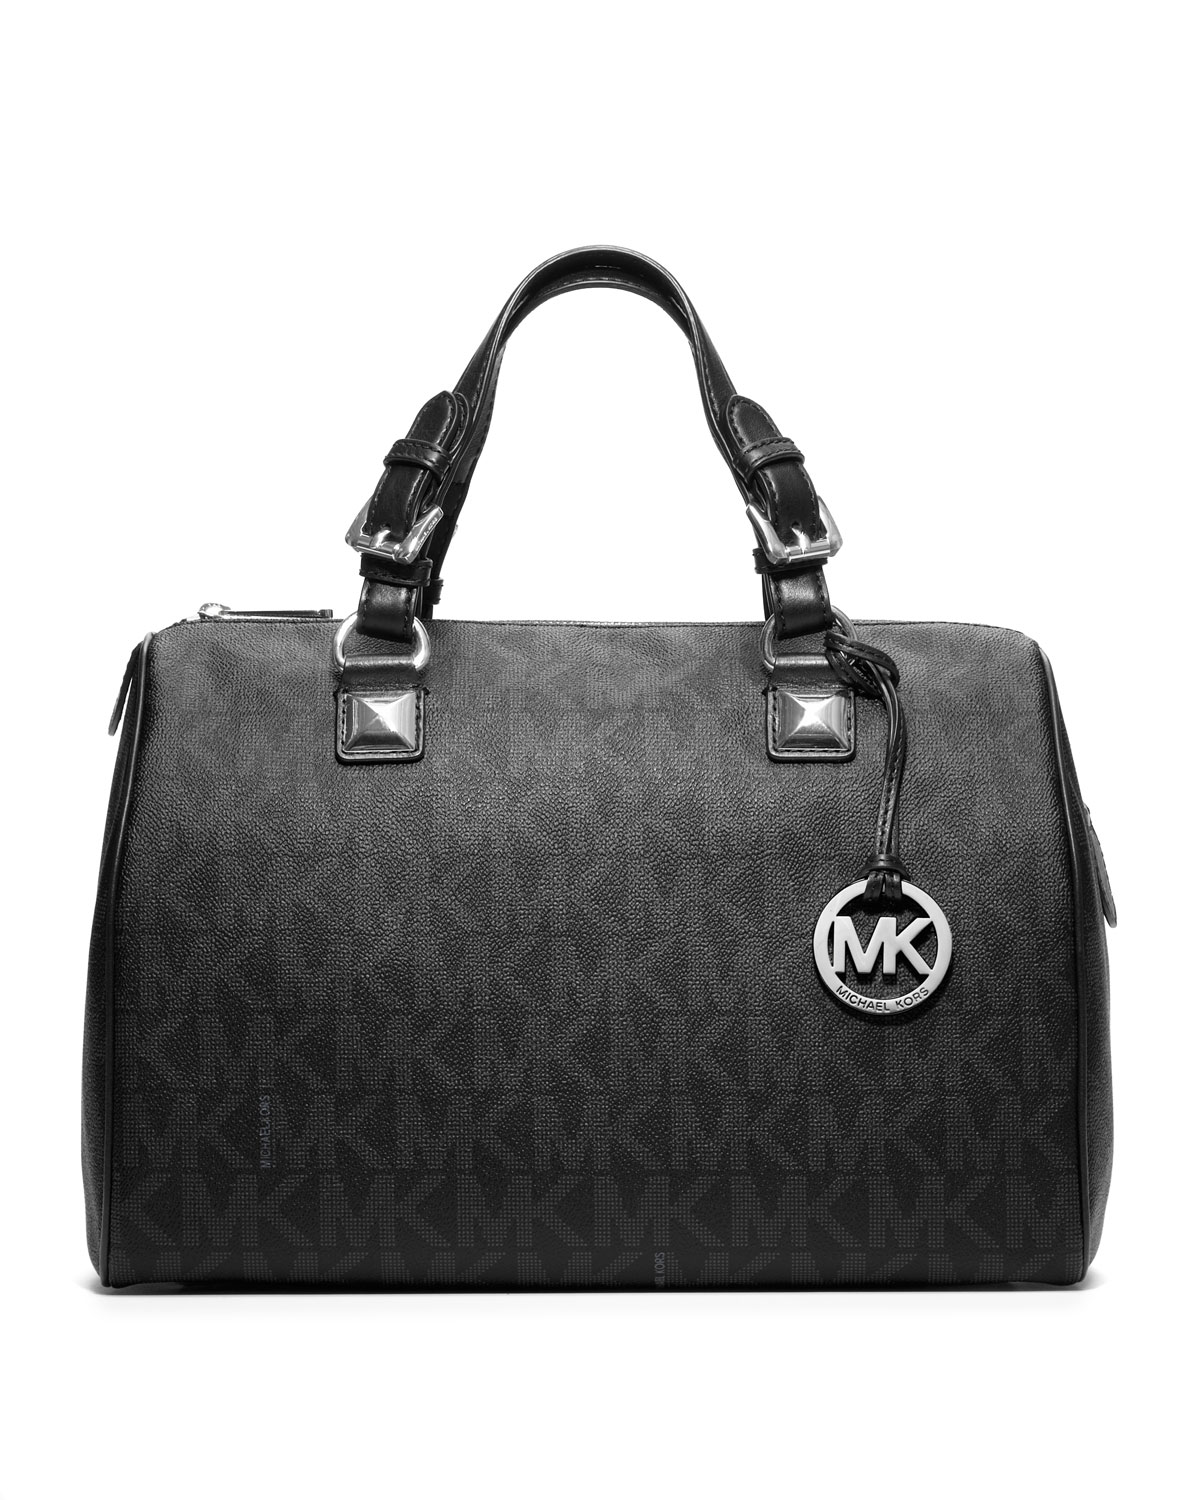 michael kors large grayson logo pvc satchel in black lyst. Black Bedroom Furniture Sets. Home Design Ideas